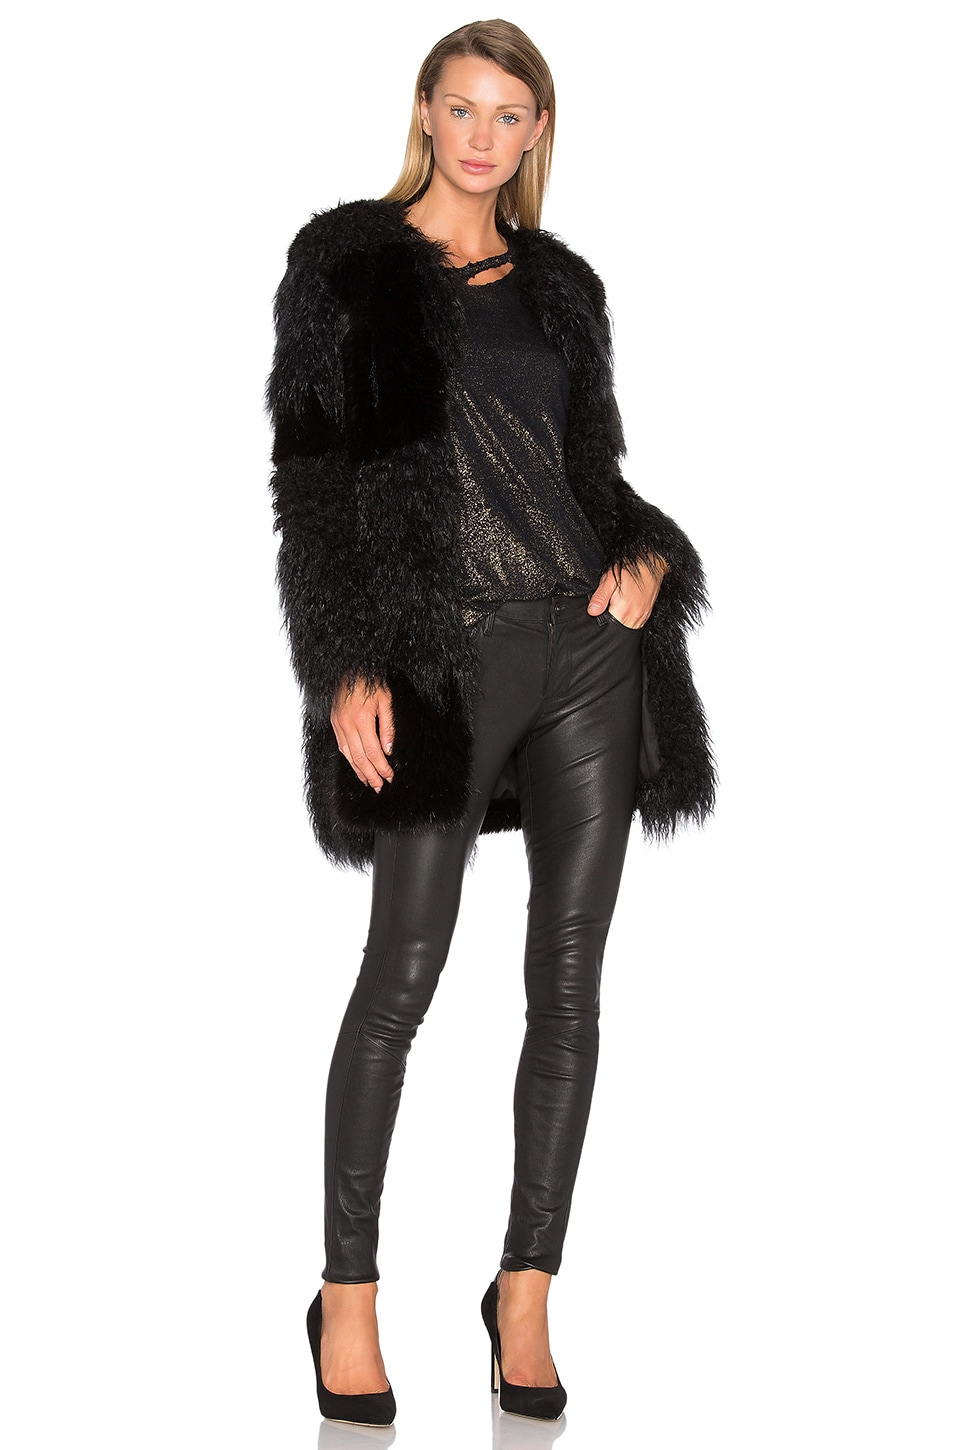 RtA Guinevere Faux Fur Coat in Nite